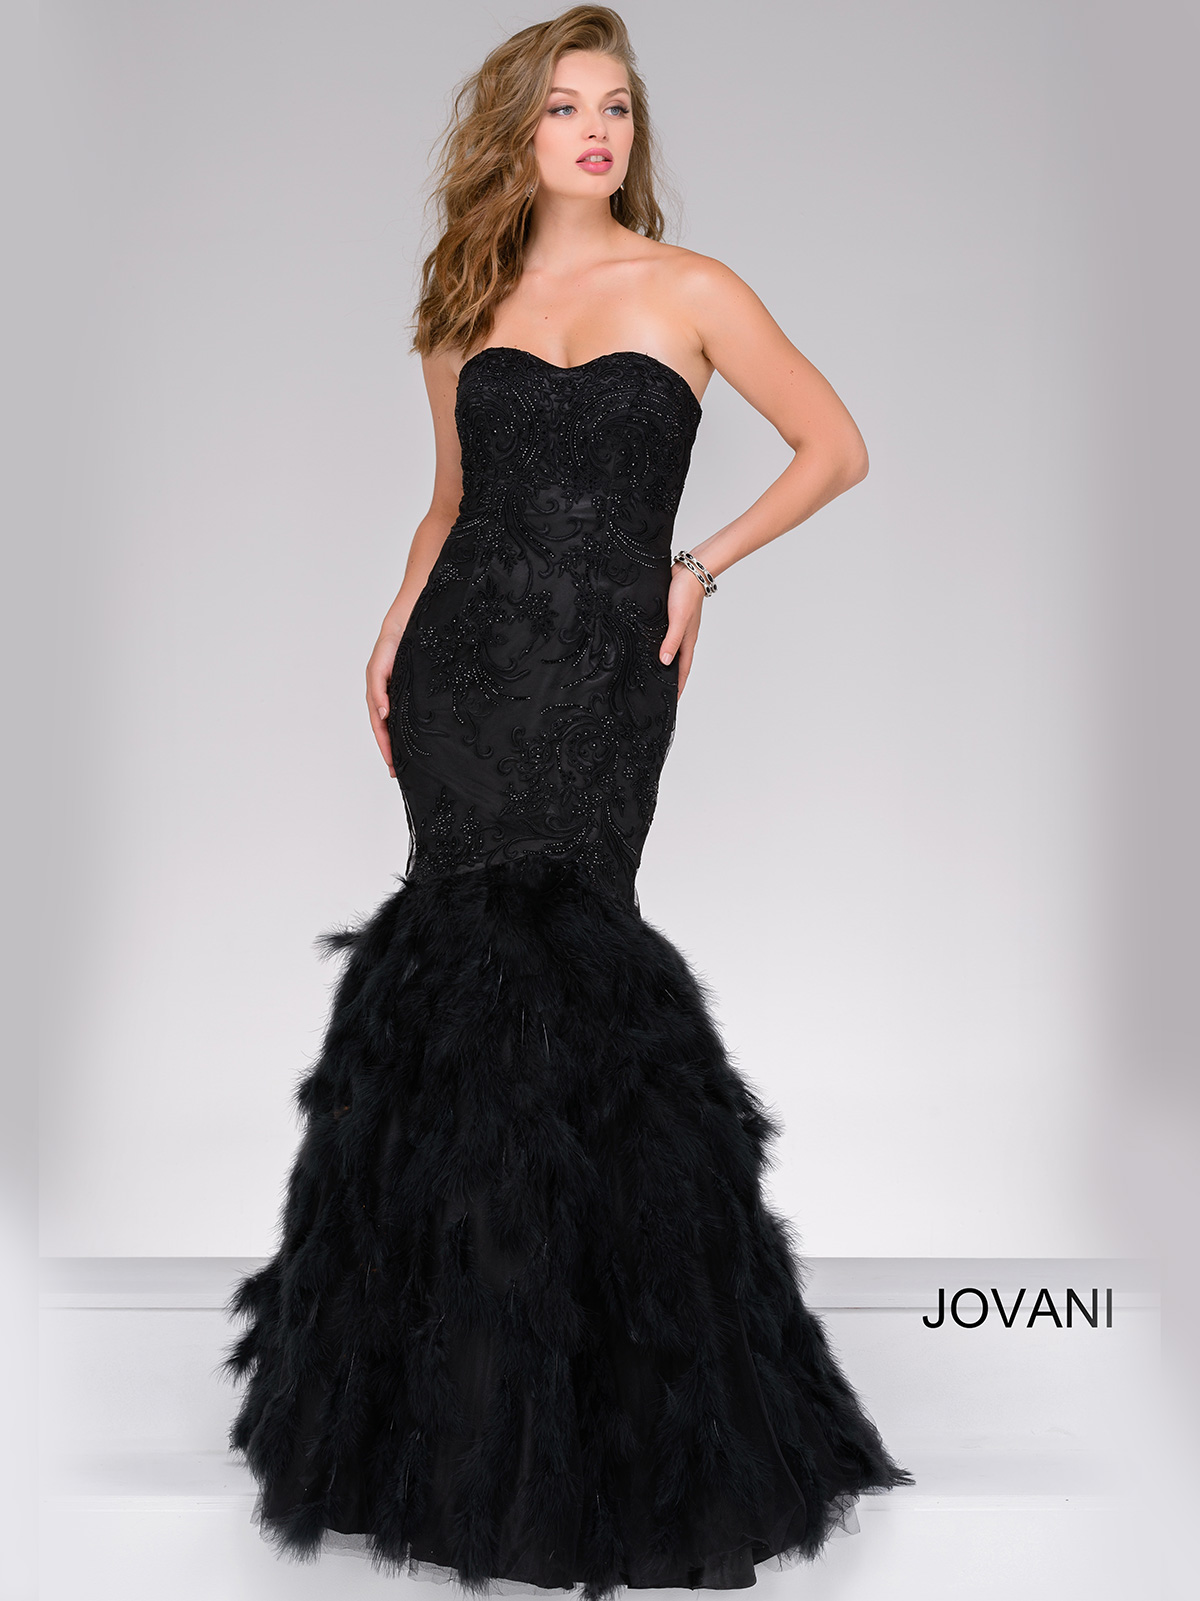 Jovani 46933 Sweetheart Mermaid Pageant Dress|PageantDesigns.com